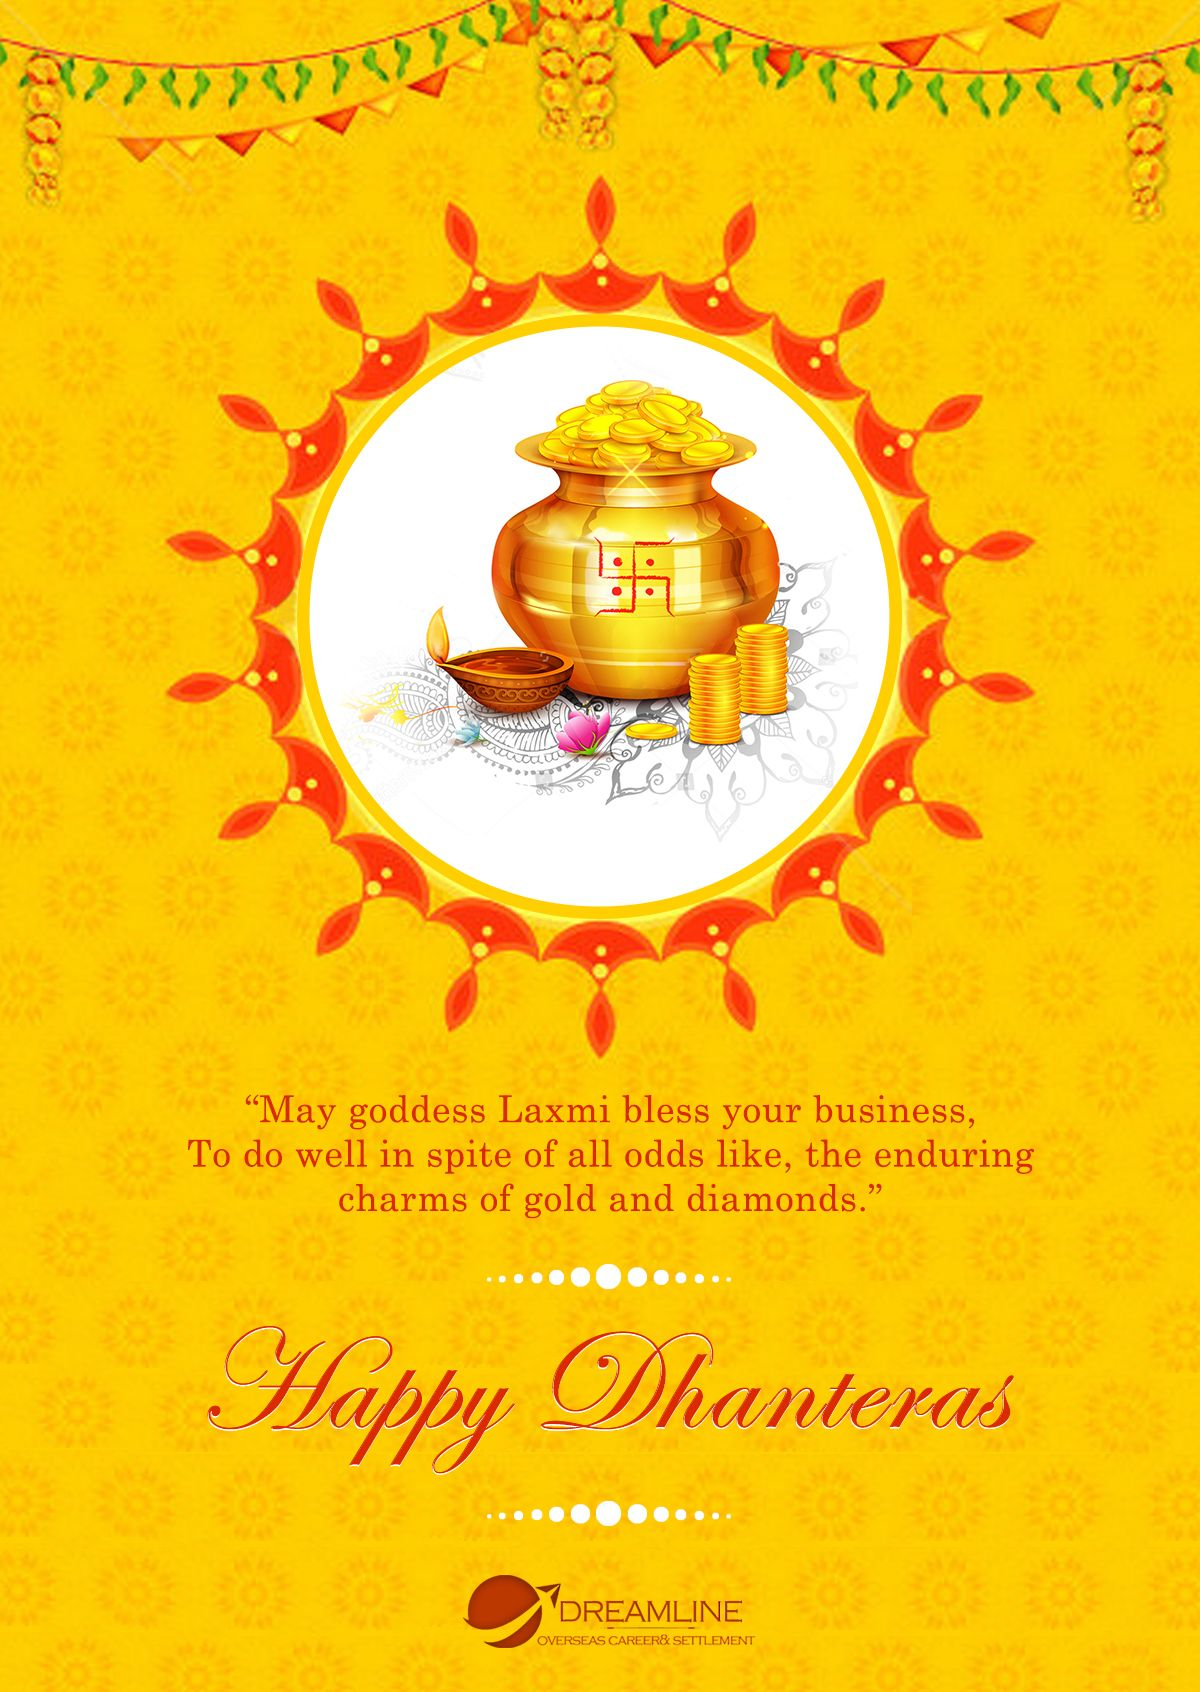 On Dhanteras Wishing You Wealth Good Health Happiness And